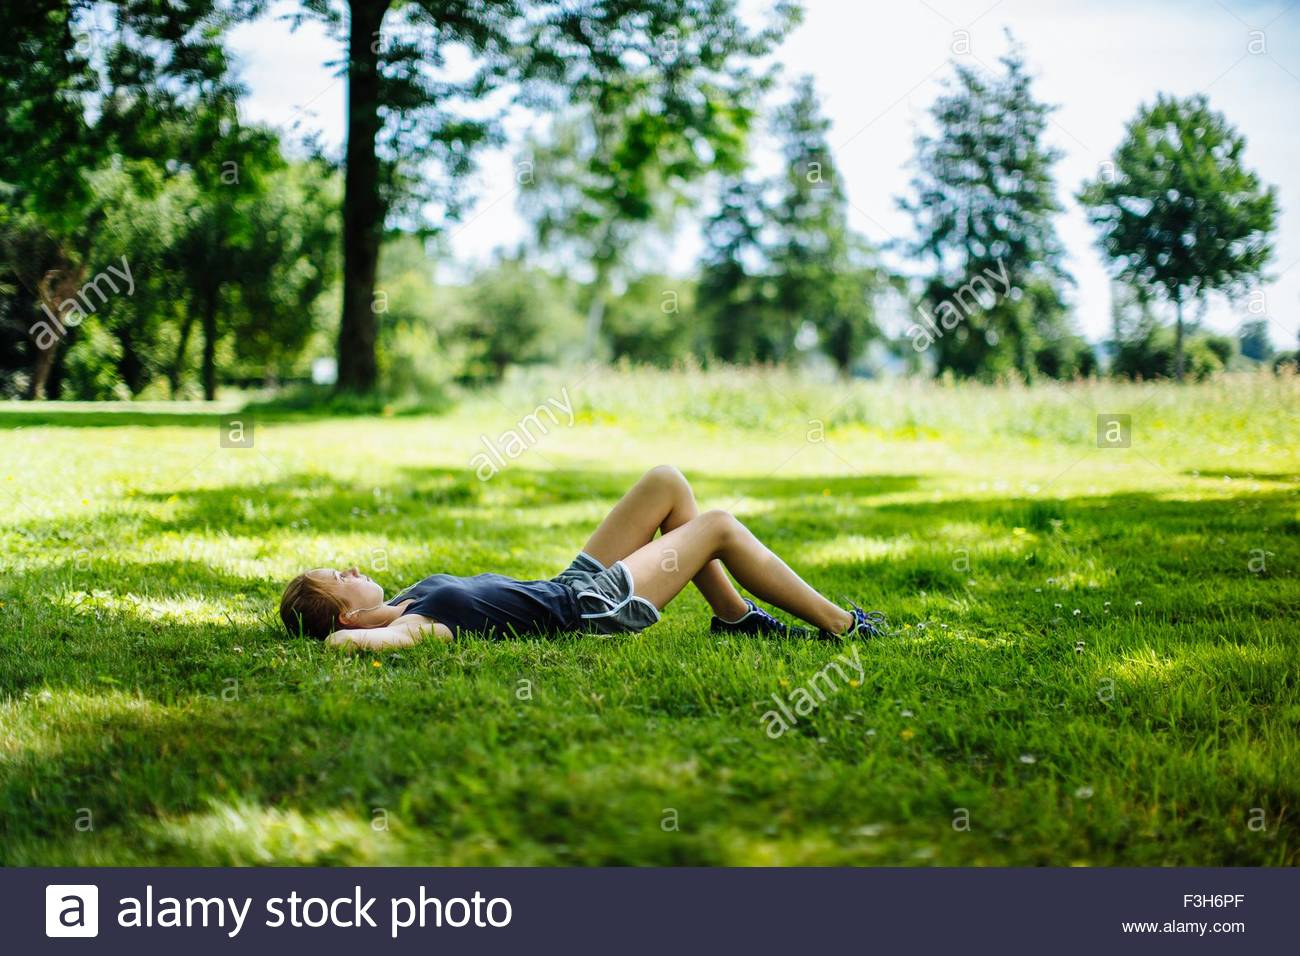 Young girl in park, lying on grass, relaxing - Stock Image